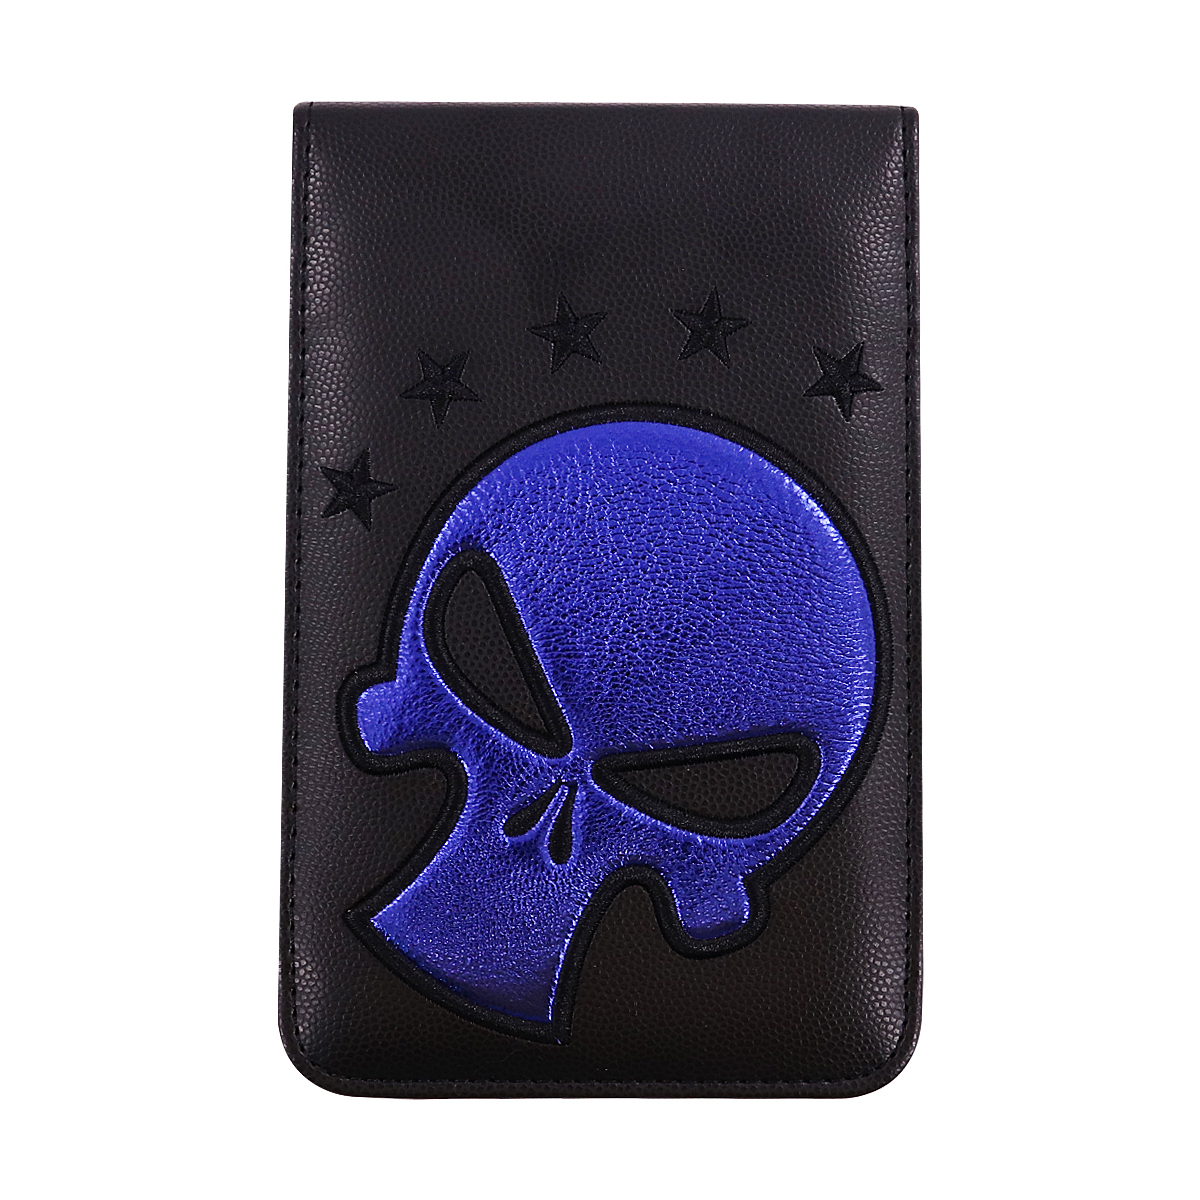 Craftsman Blue/Red Skull Leather Golf Scorecard / Yardage Book Holder Cover FREE SHIPPING 6.3